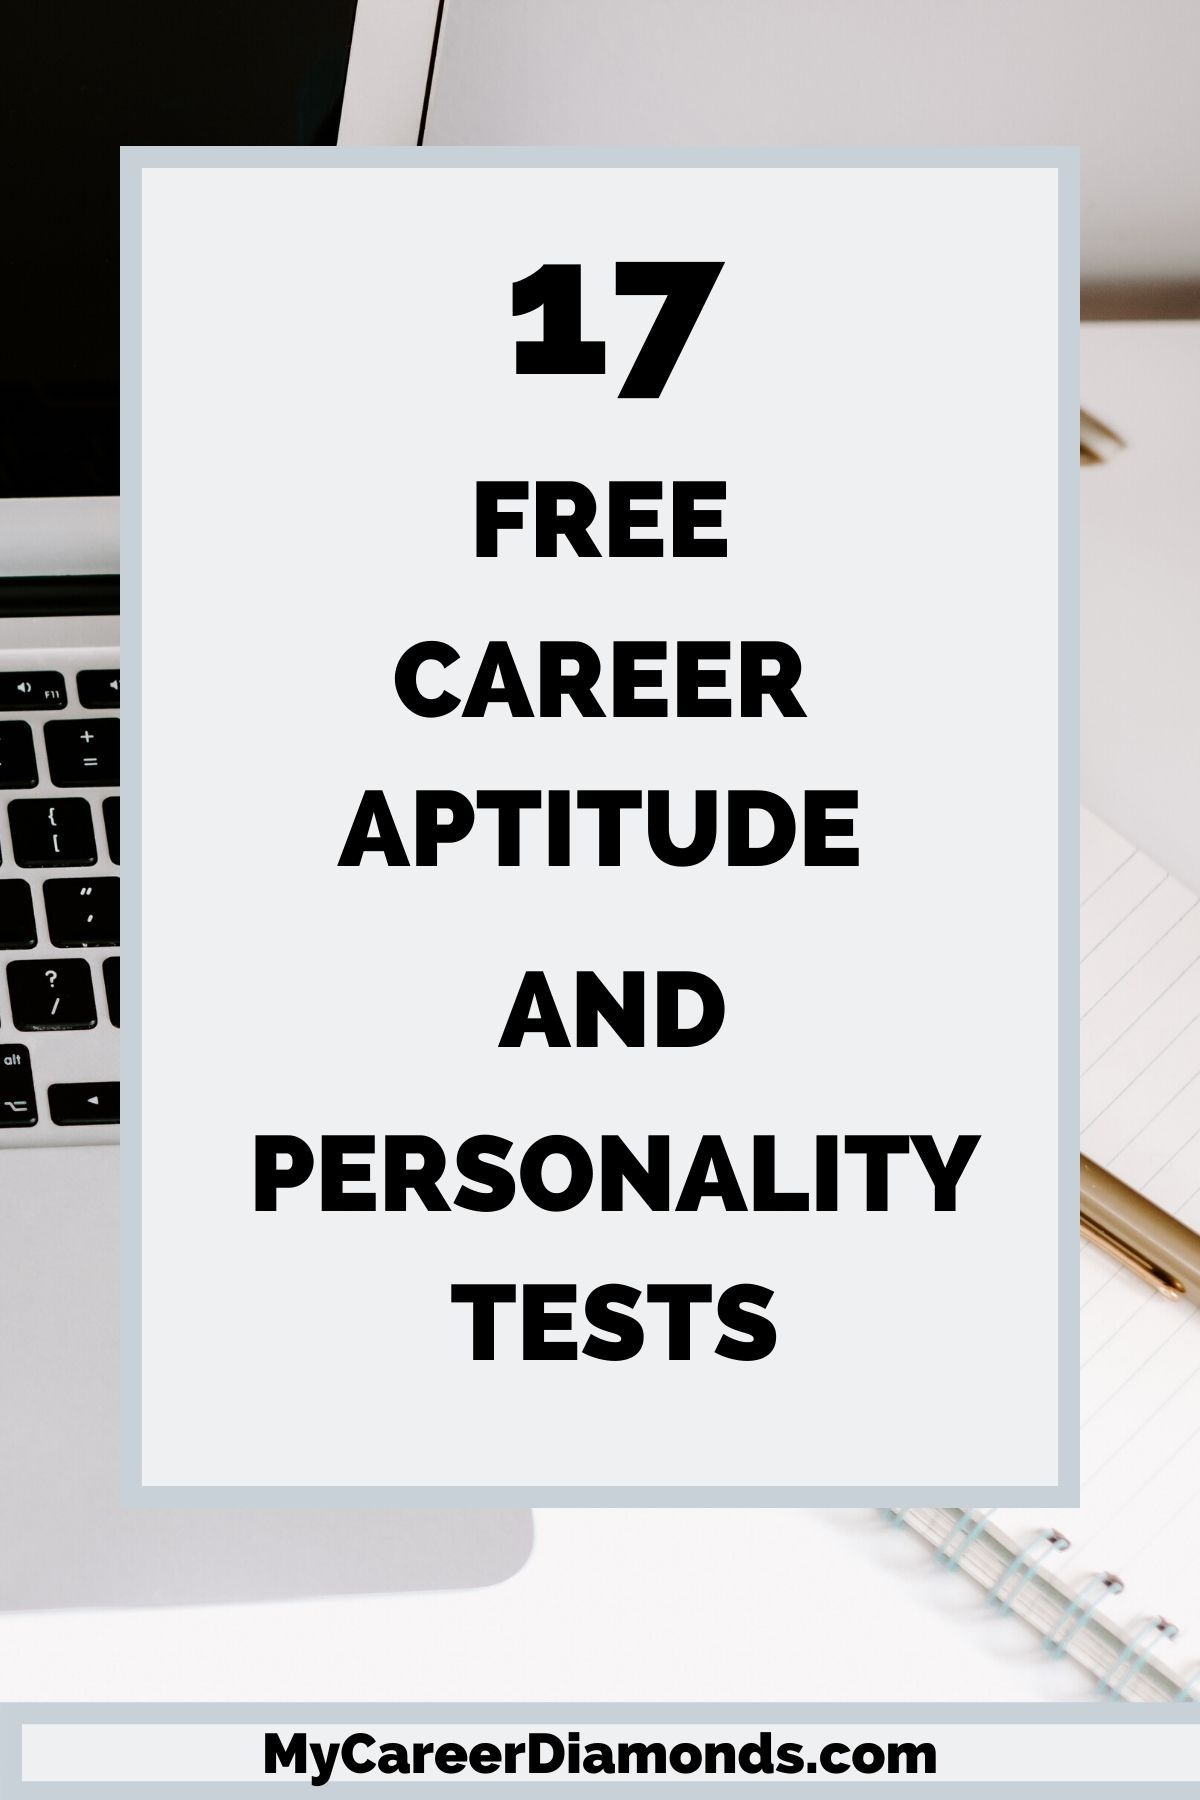 17 Free Career Aptitude and Personality Tests in 2020